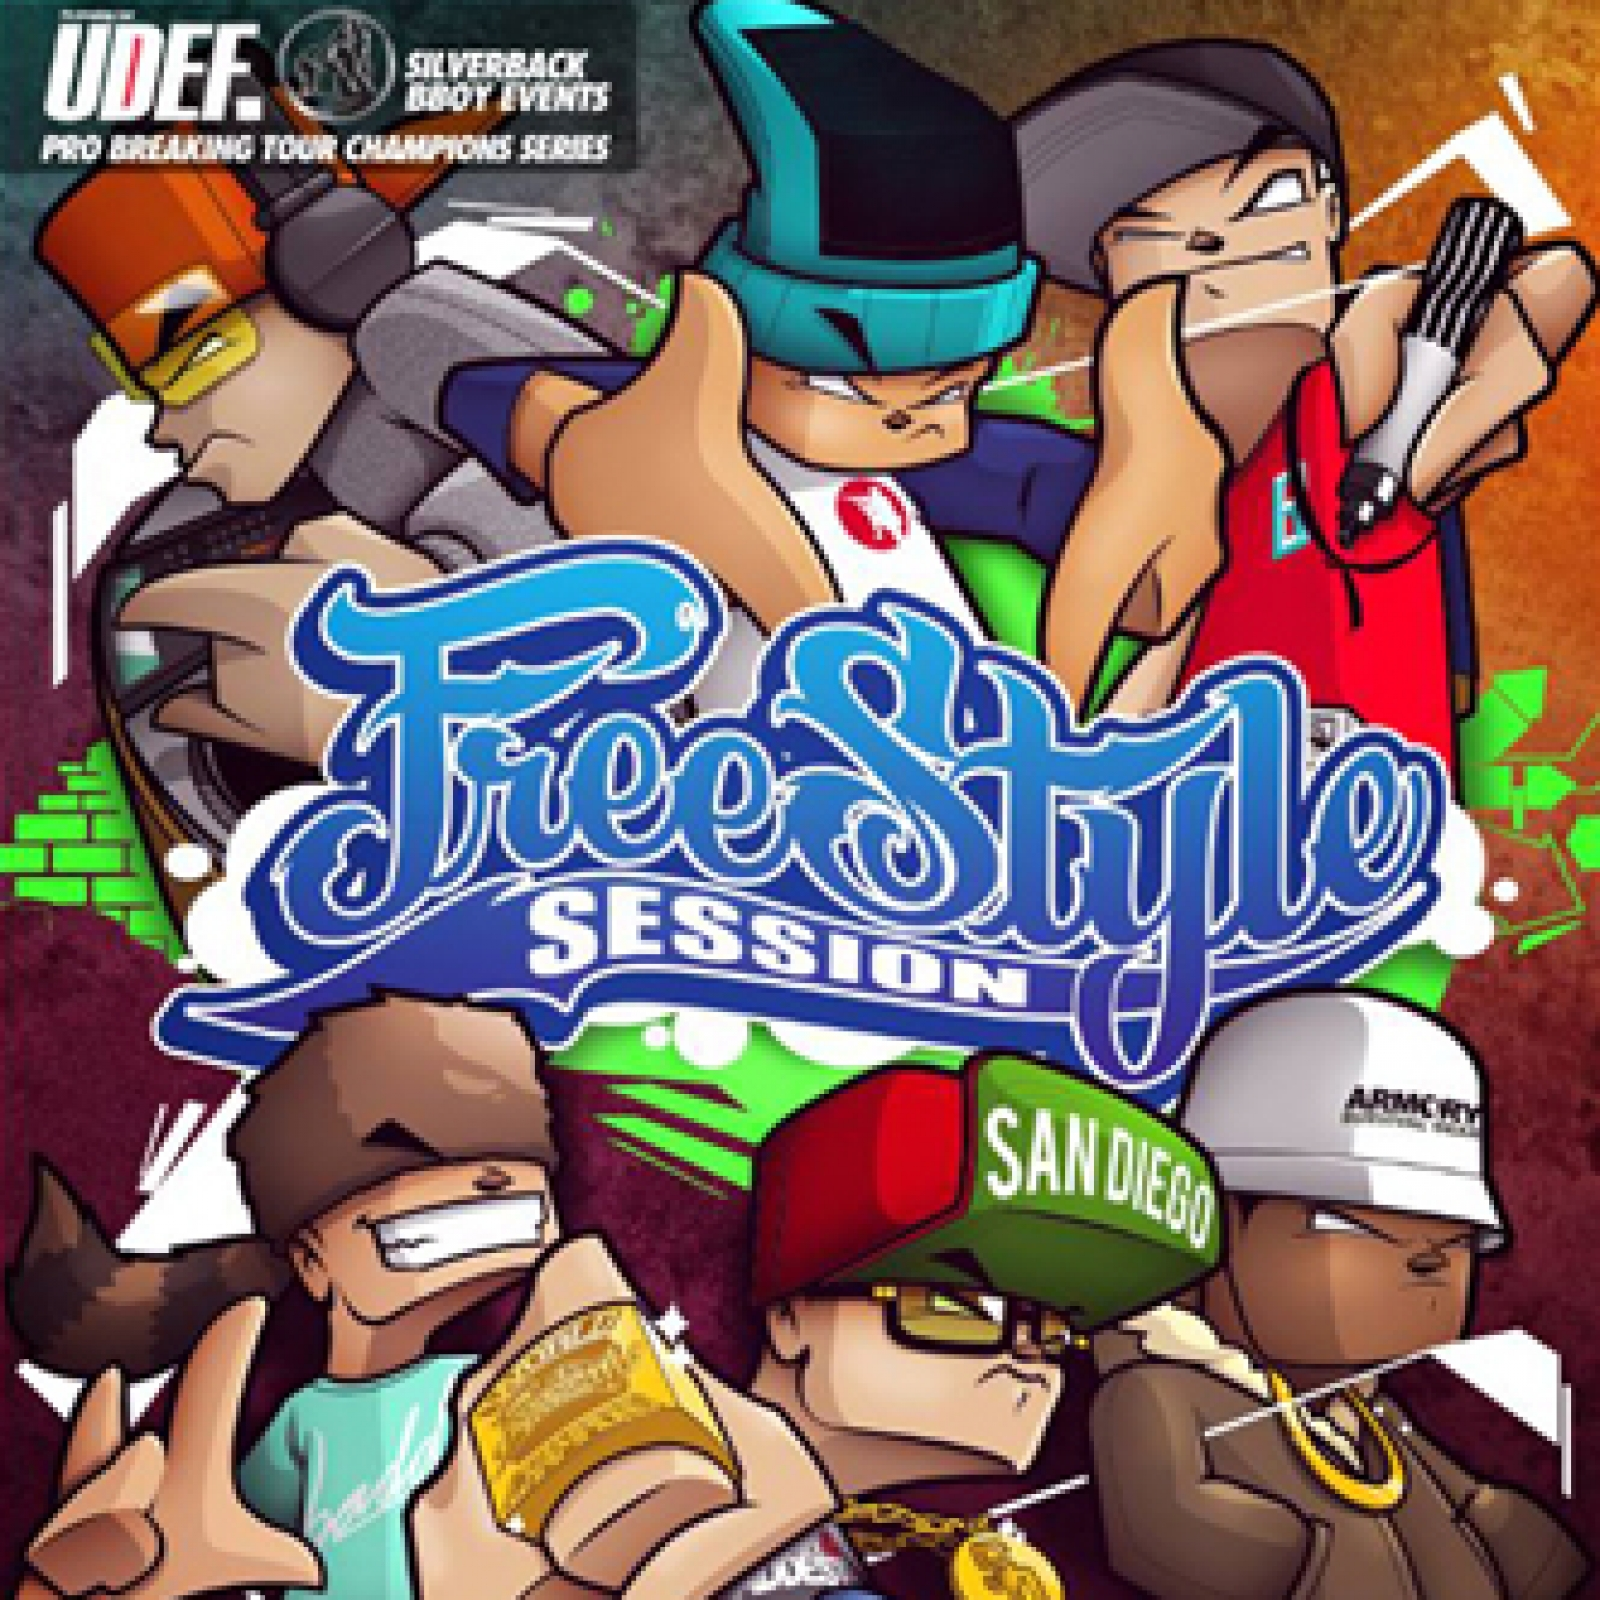 Freestyle Session World Finals 2014 poster